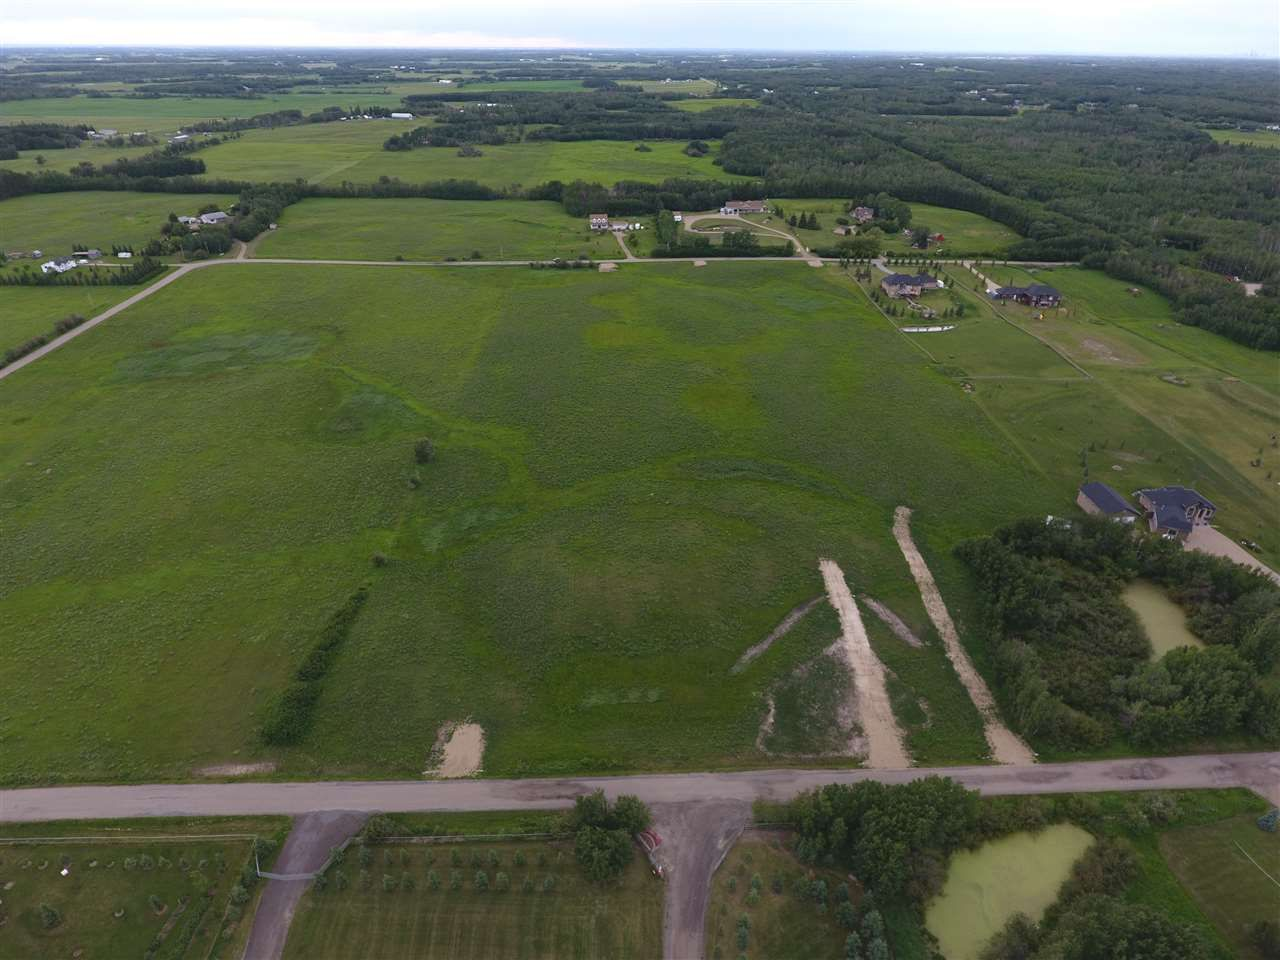 Main Photo: 22111 Twp Rd 510: Rural Leduc County Rural Land/Vacant Lot for sale : MLS®# E4211288